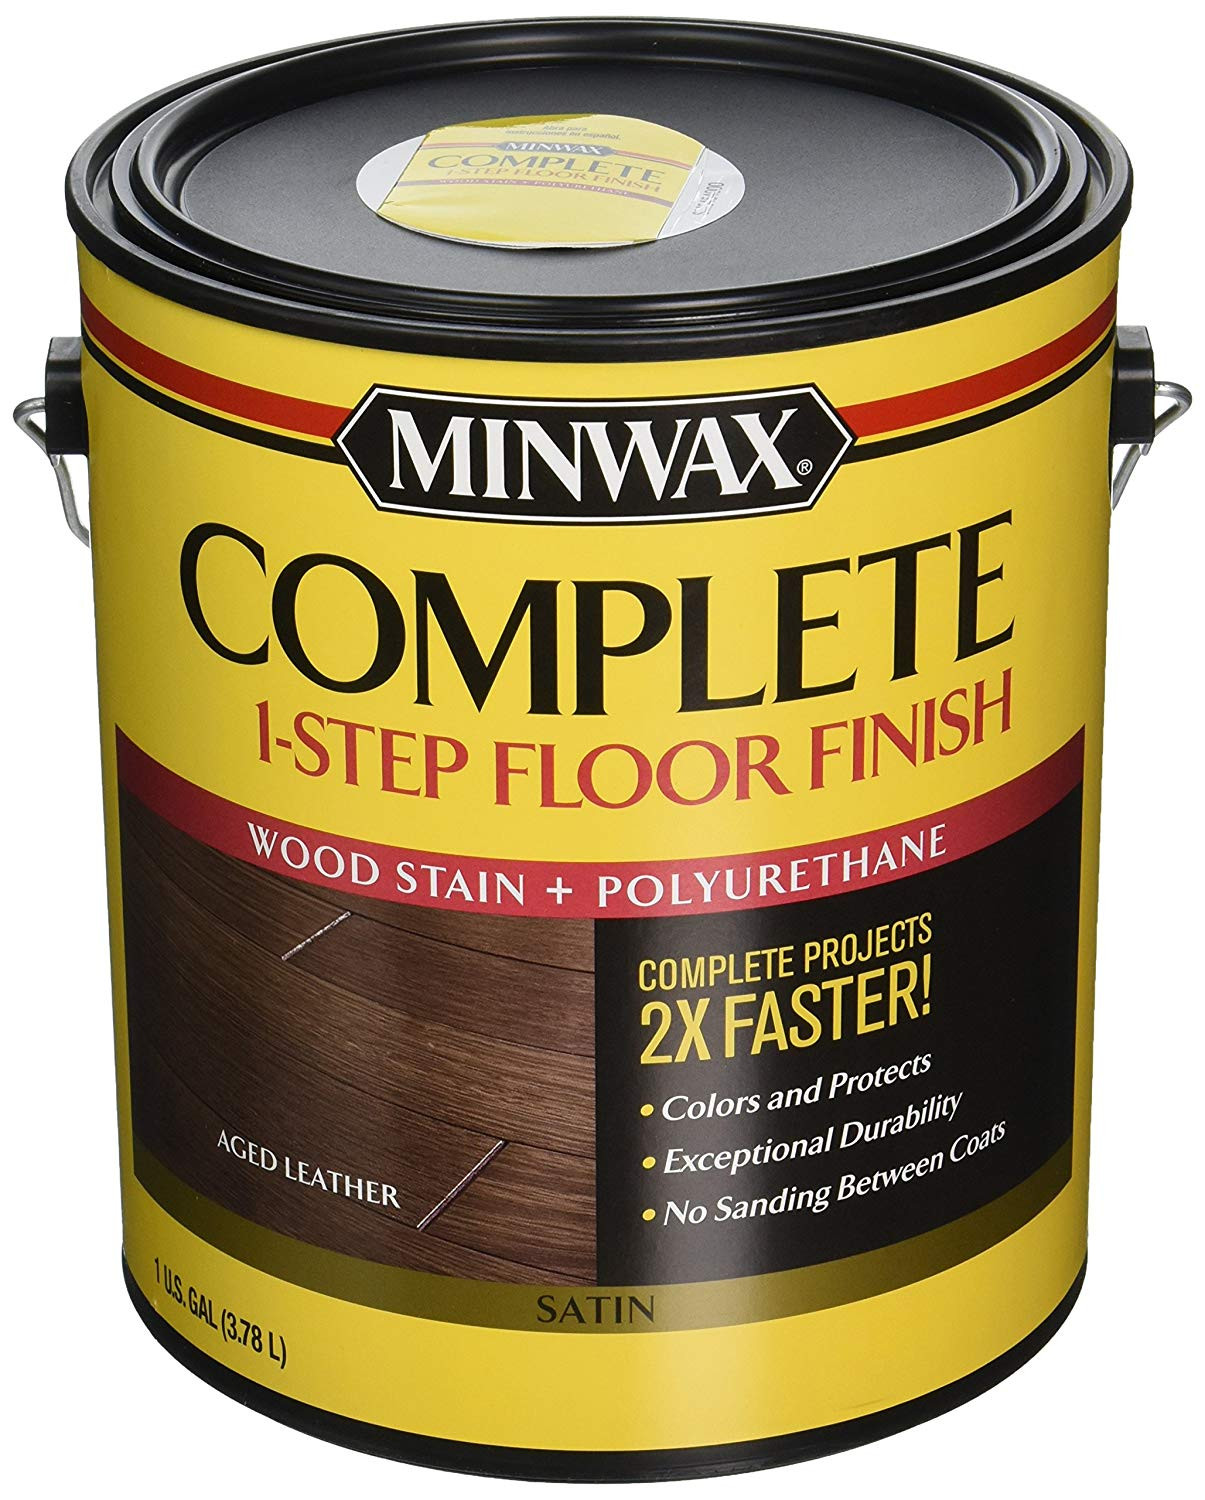 hardwood floor stair kits of minwax 672050000 67205 1g satin aged leather complete 1 step floor with minwax 672050000 67205 1g satin aged leather complete 1 step floor finish amazon com